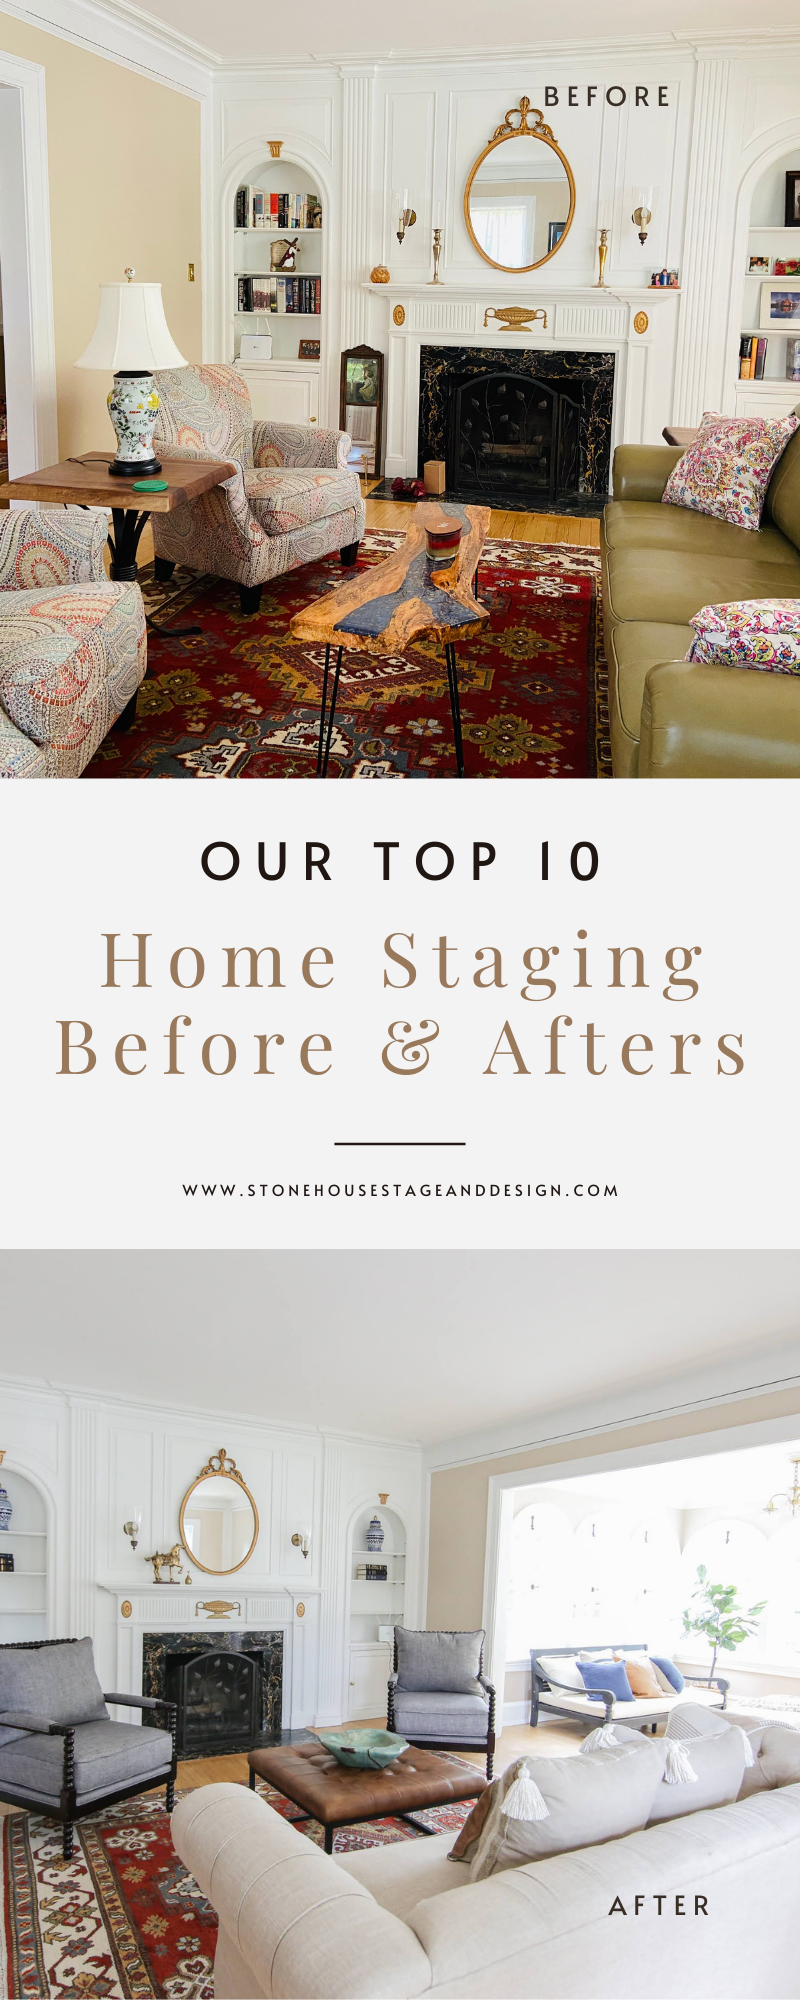 Top 10 Home Staging Before and Afters!